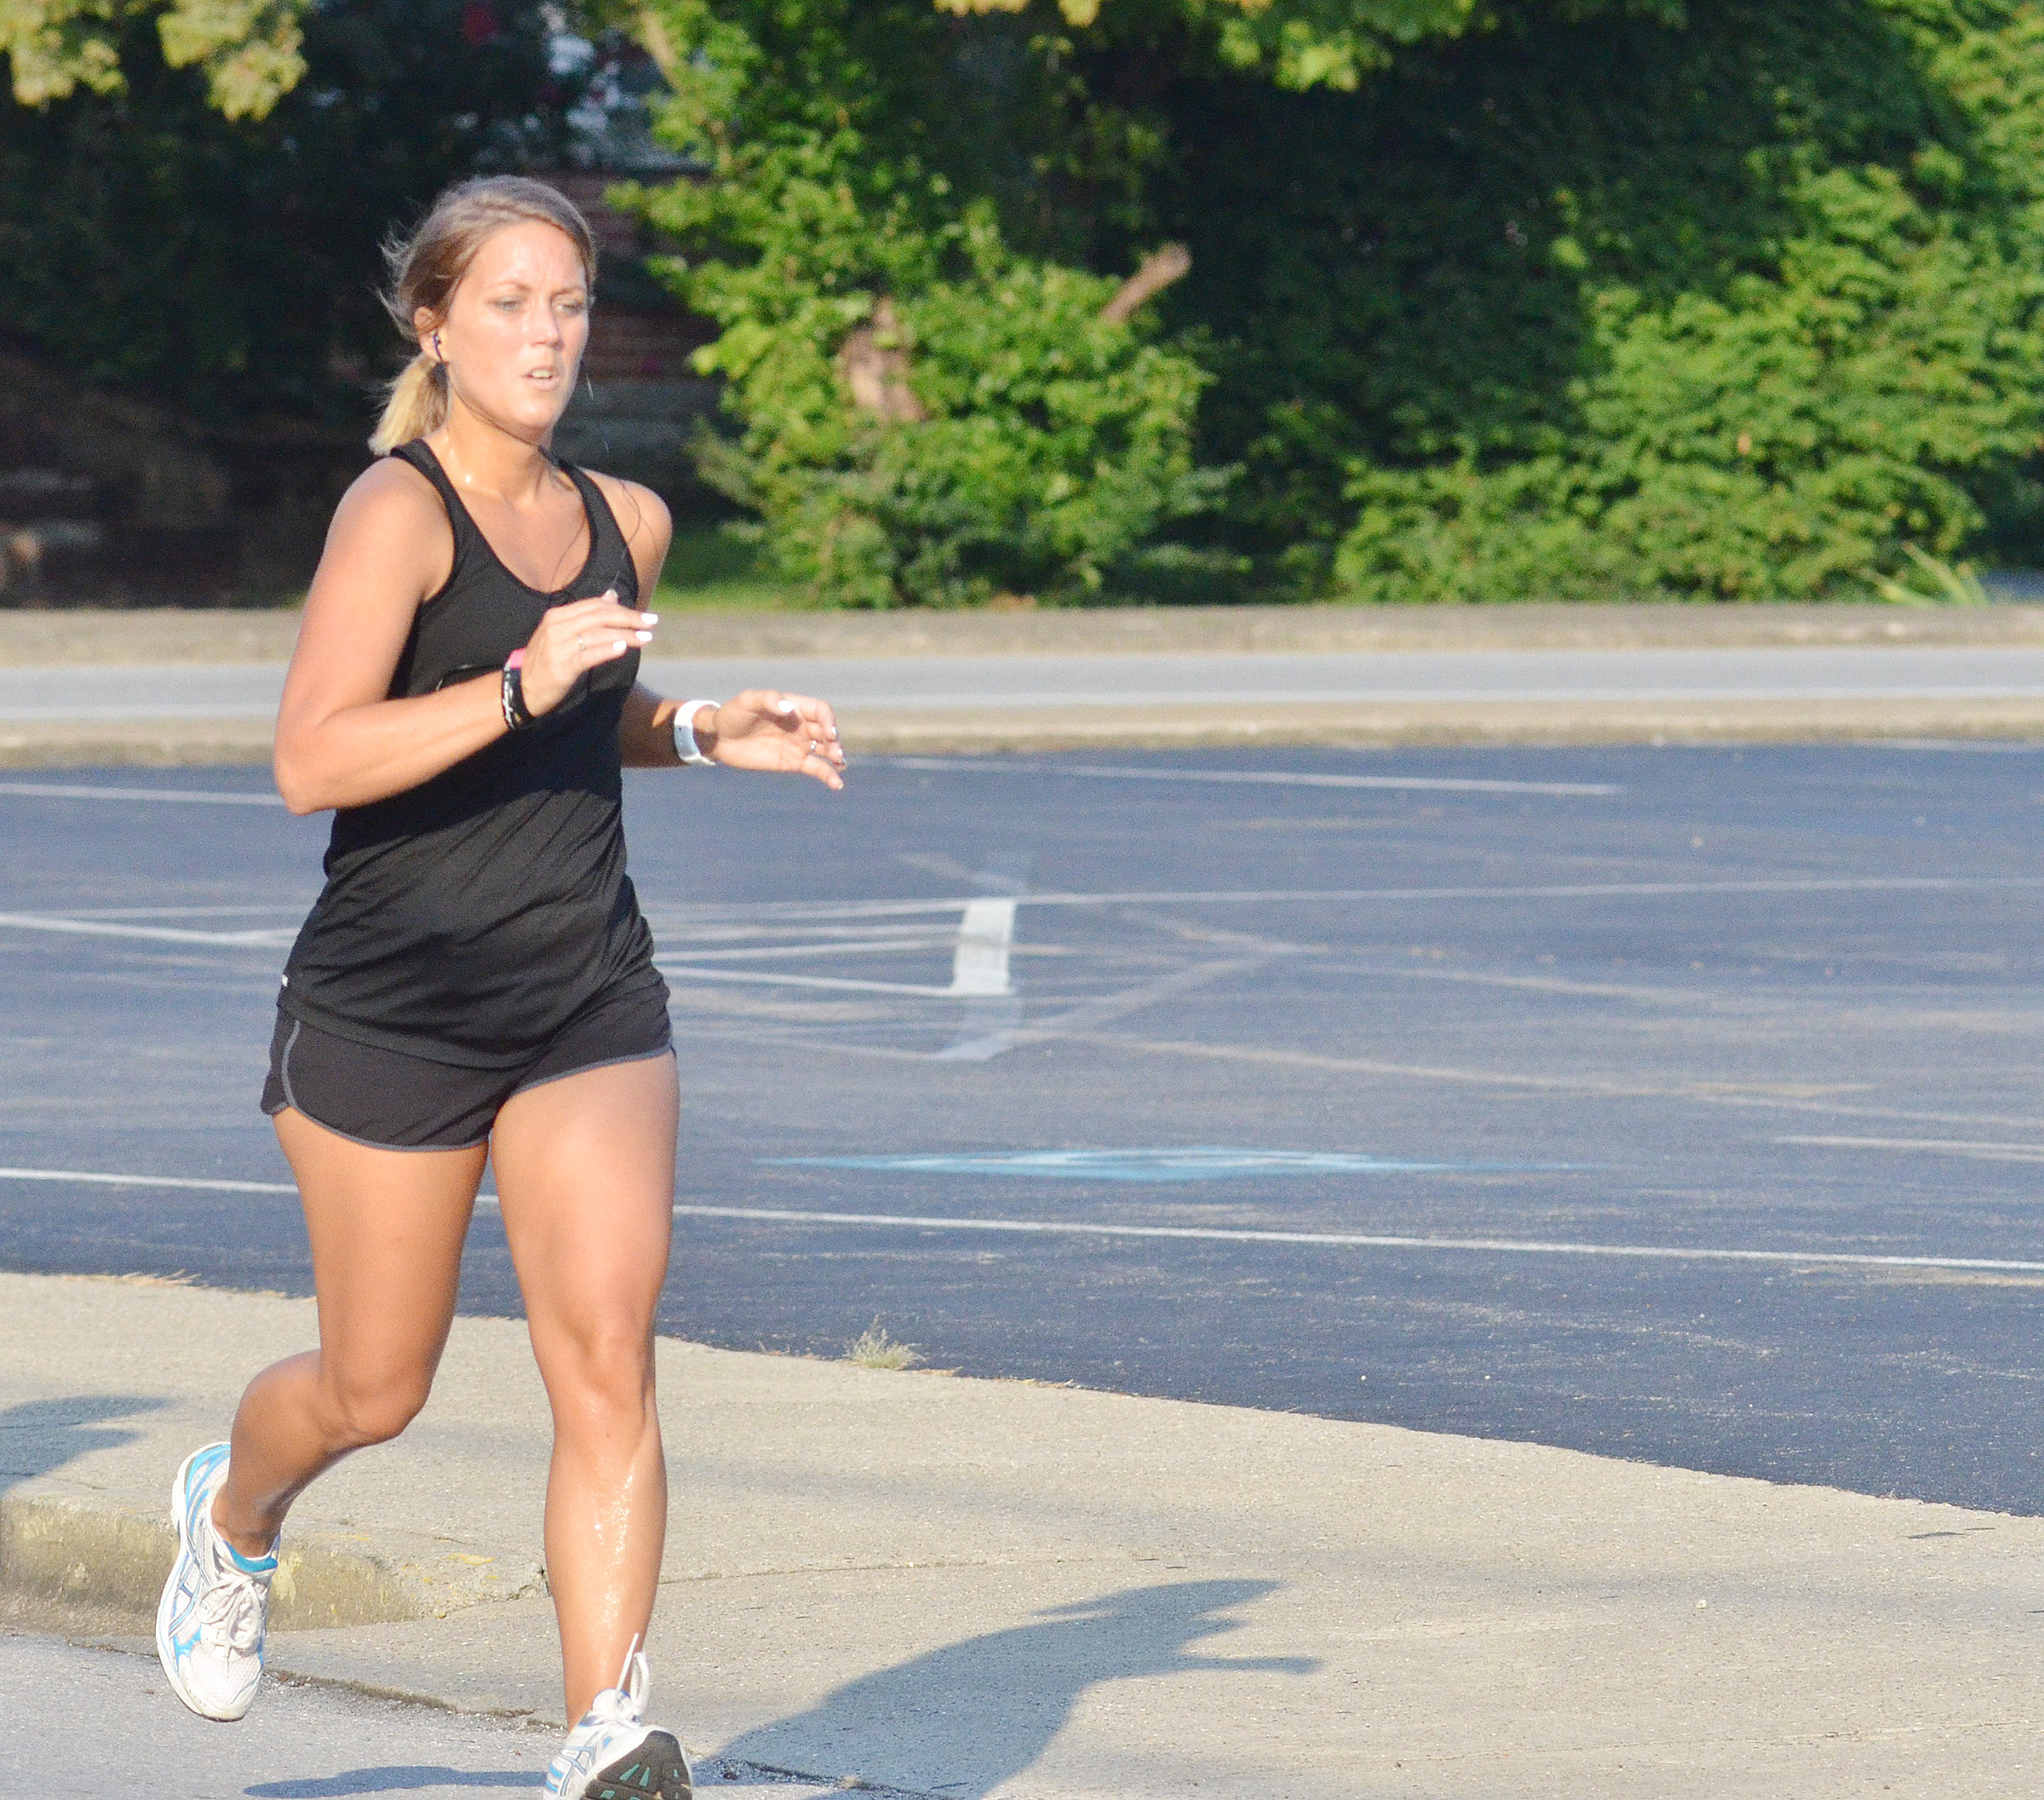 Campbellsville Middle School bookkeeper Natalia Warren finishes the 5K race.